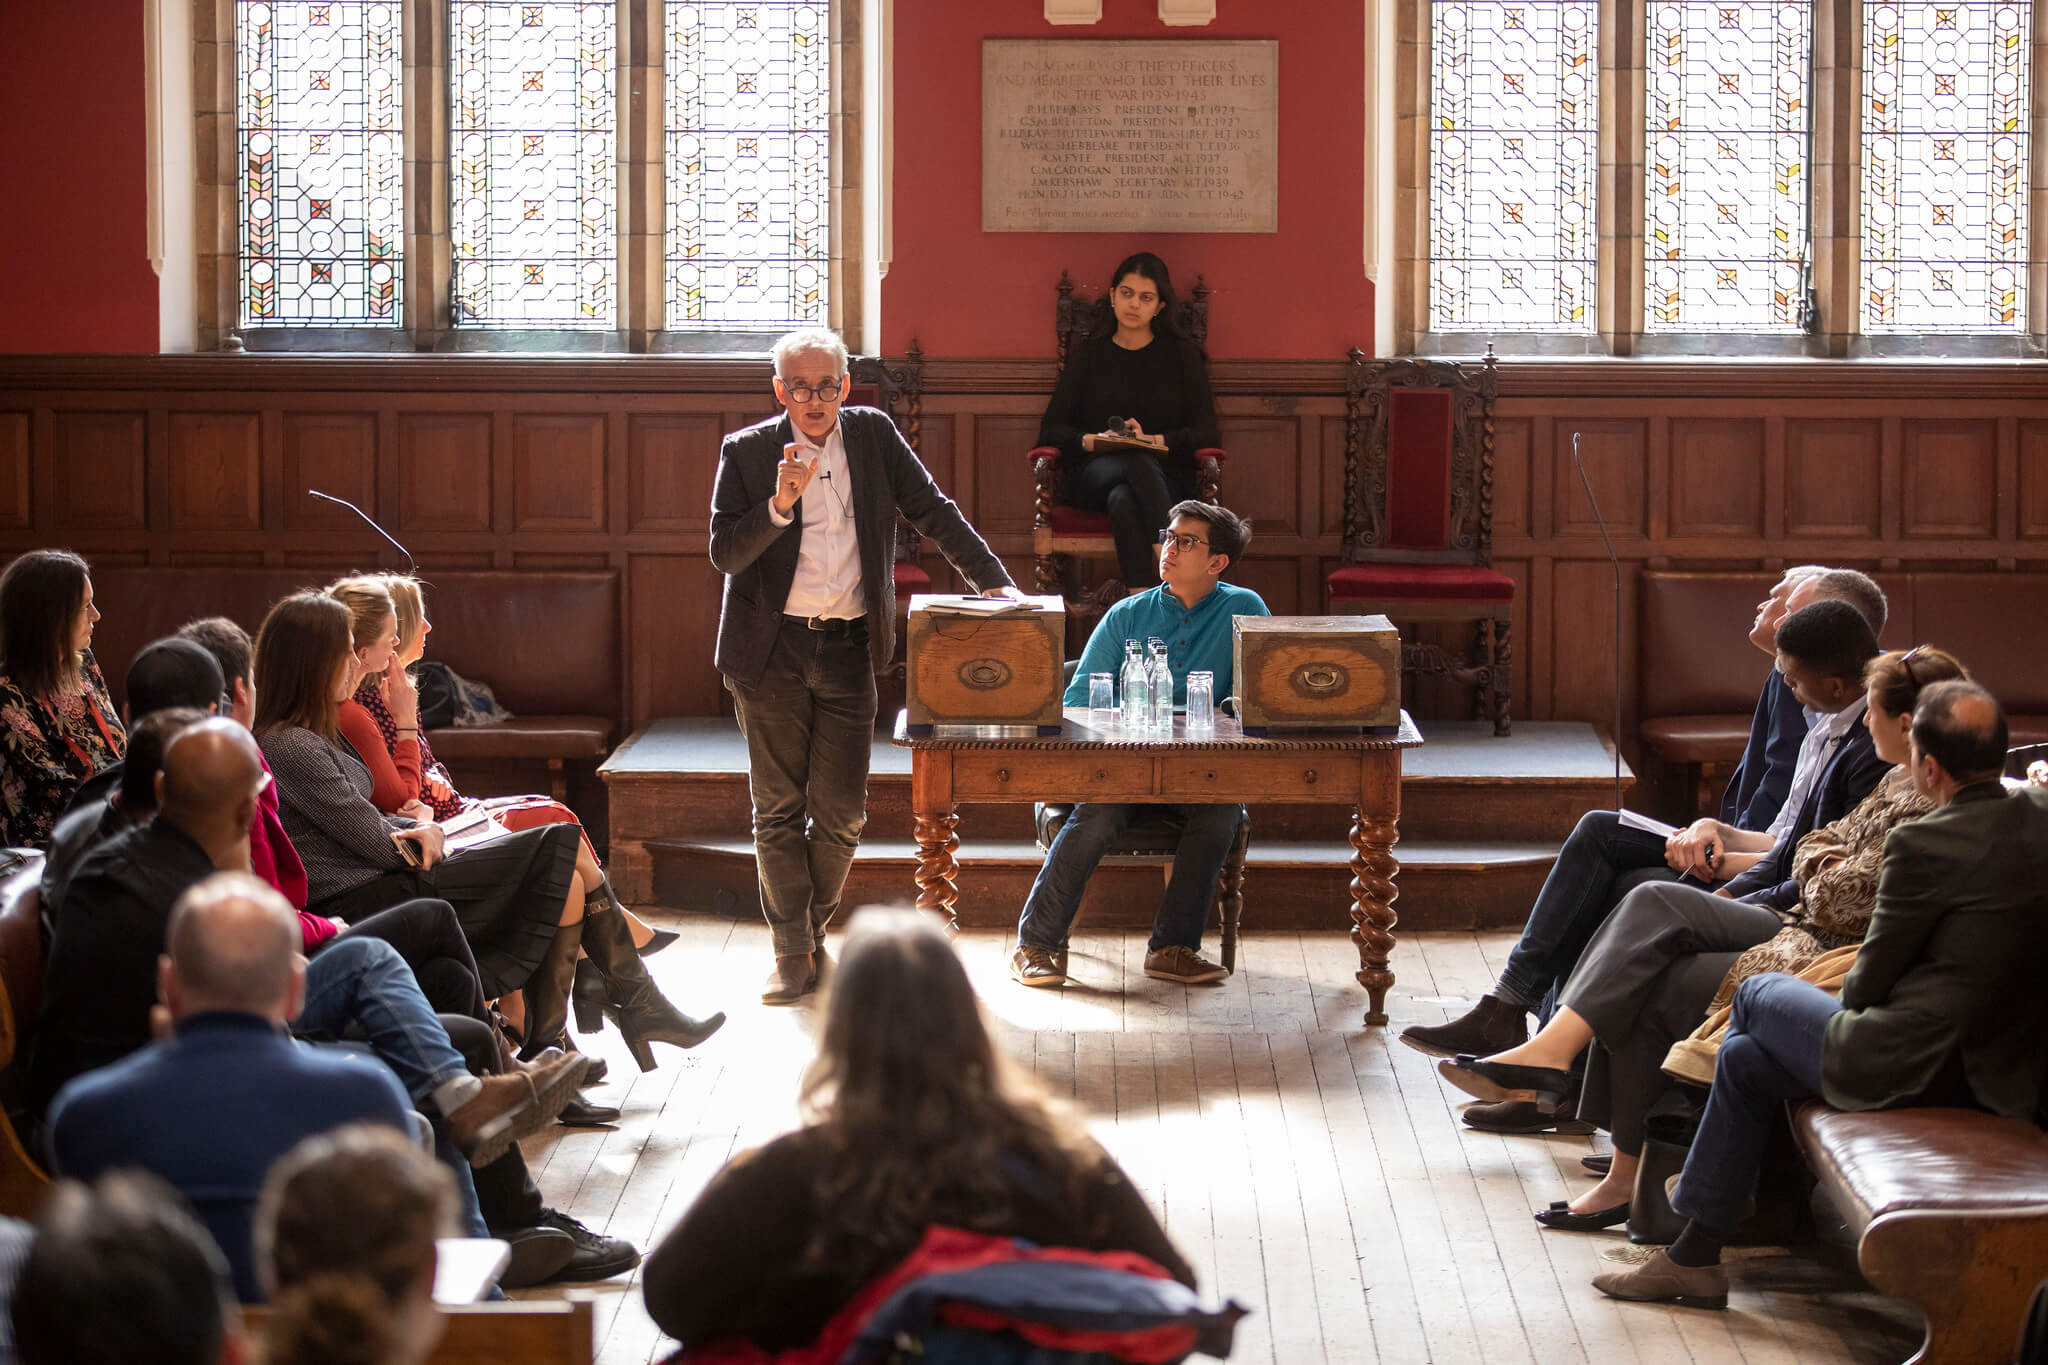 Sean Hinton in the Oxford Union Debating Chamber.